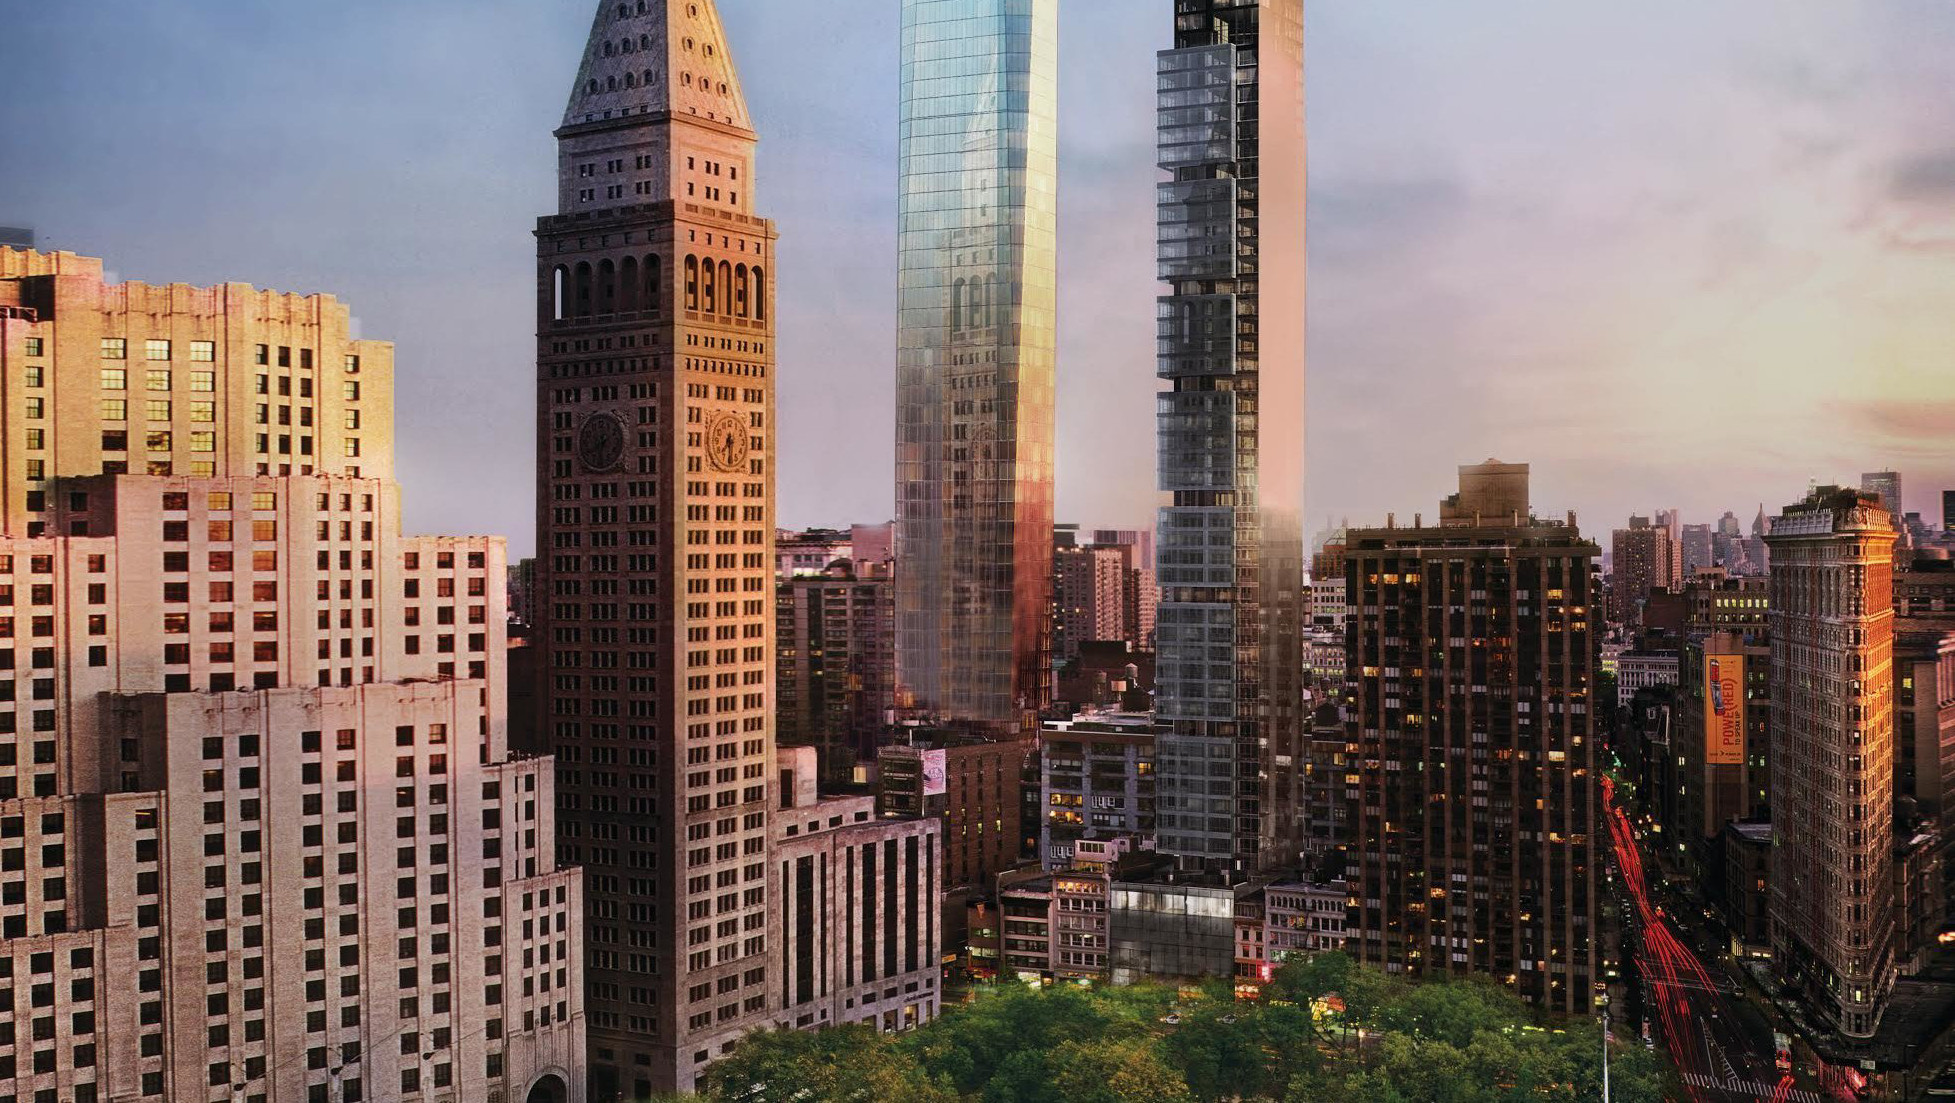 With 800 new units on the way could the Flatiron District lose